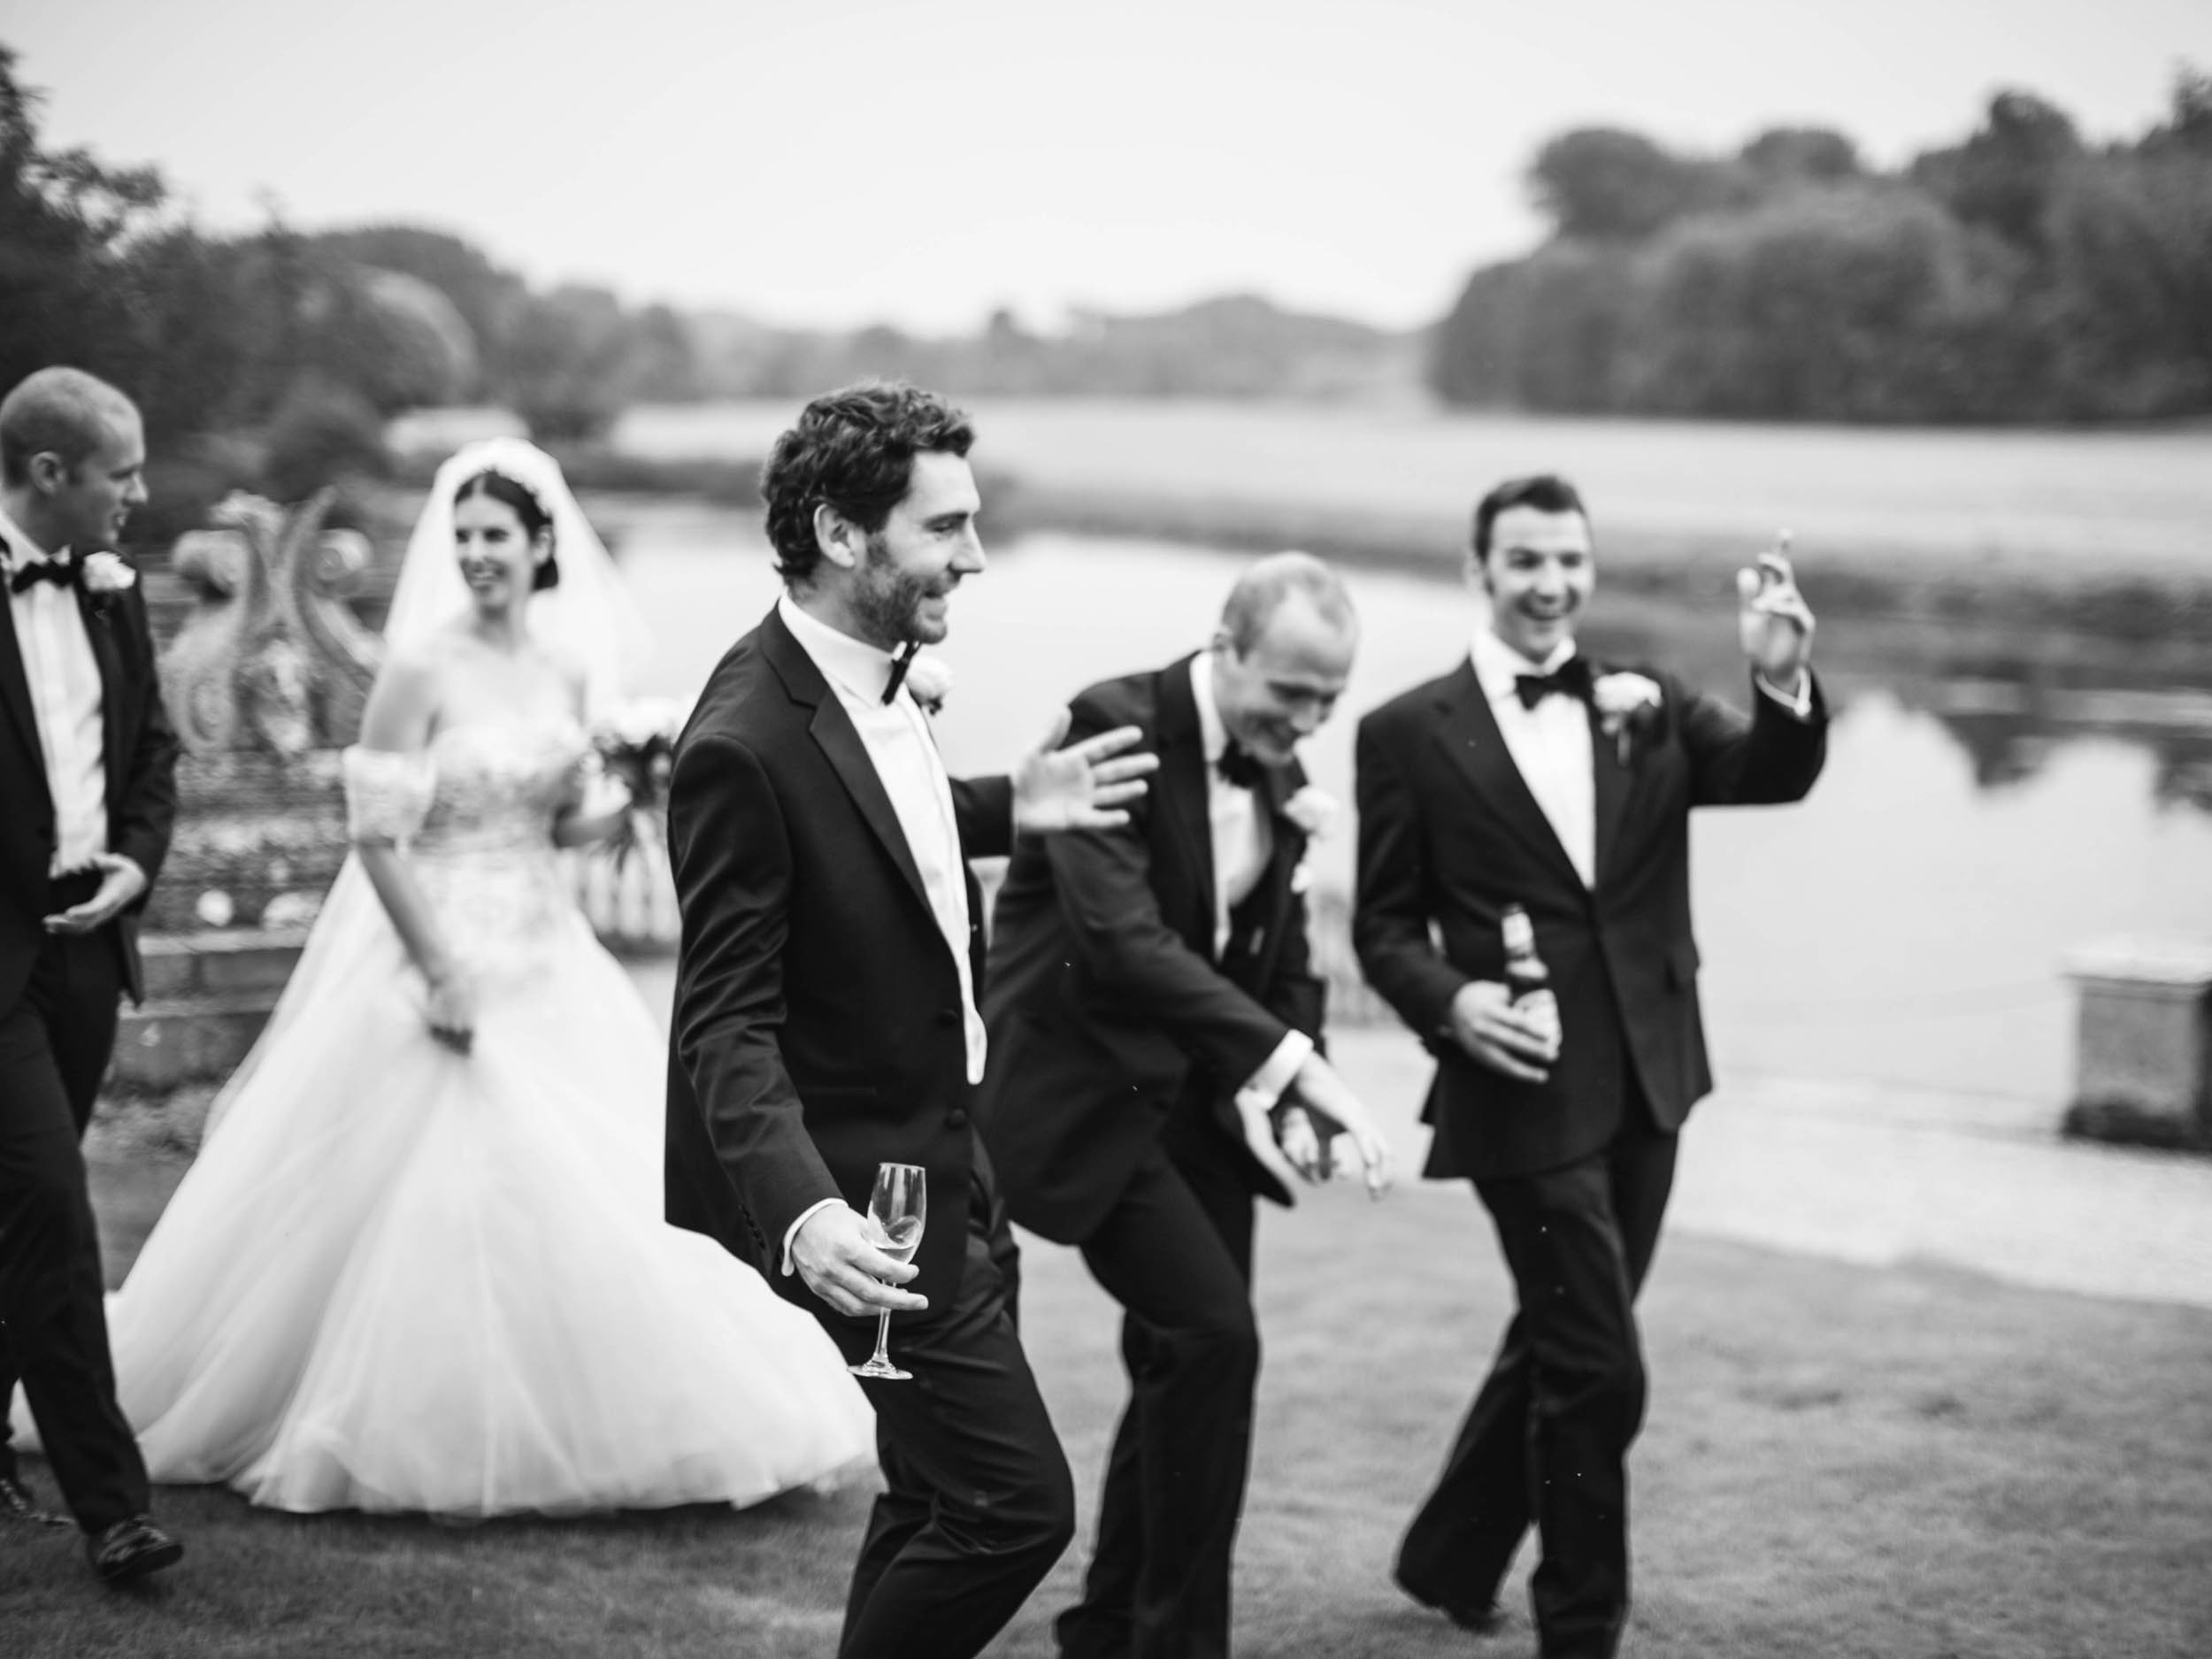 Amy O'Boyle Photography- Destination & UK Fine Art Film Wedding Photographer- Stoneleigh Abbey Wedding-21.jpg